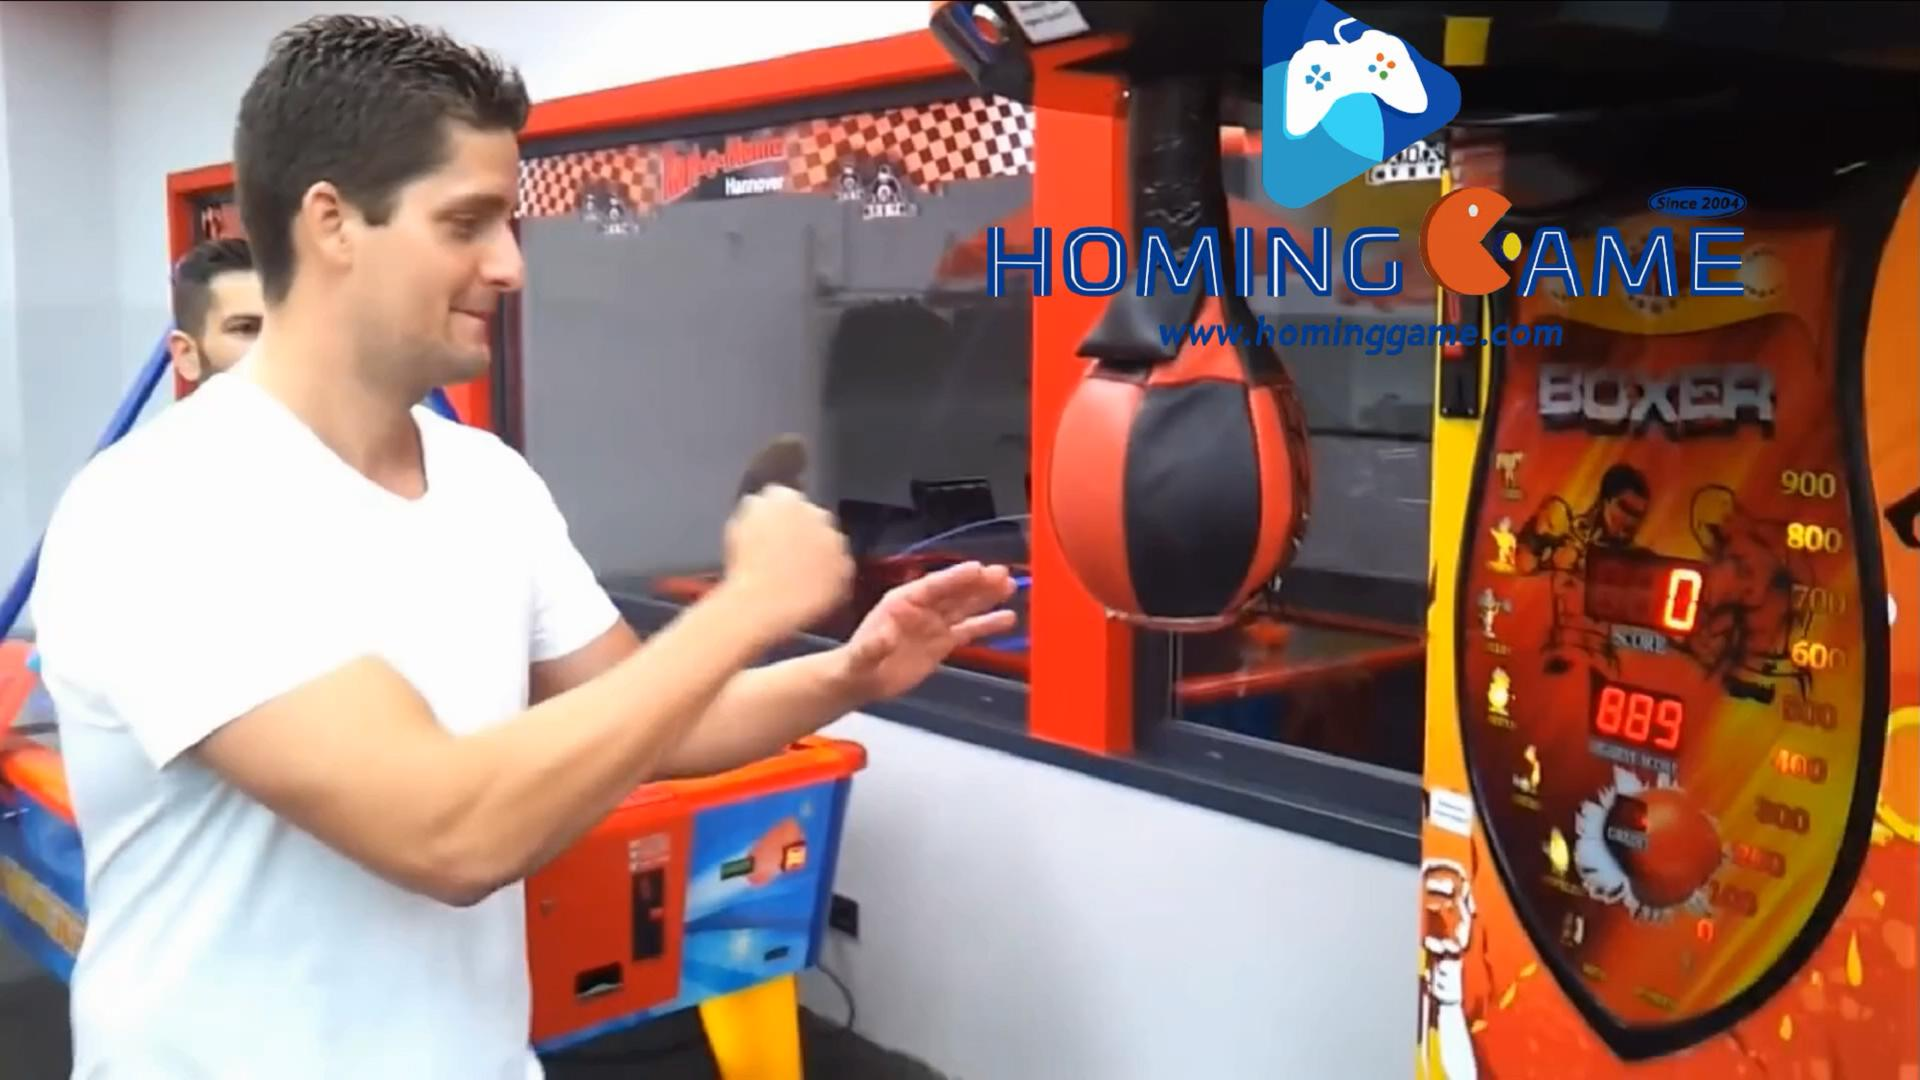 boxing machine,boxing game machine,boxing arcade game machine,boxing amusment machine,punching game machine,punching bag game machine,punching bag arcade game machine,boxing punching bag ame machine,boxer game machine,boxer boxing game machine,boxer arcade ame machine,sports game machine,sports boxing game machine,boxing redemption game machine,redemption game machine,boxing prize game machine,arcade games,game machine,coin operated game machine,coin-op game machine,amusement game,amusement park game equipment,game equipment,indoor game machine,outdoor game machine,electrical game machine,hominggame,hominggame boxing game machine,hominggame punching machine,hominggame punching bag game machine,hominggame boxing game,hominggame boxer game machine,games,arcade game machine,www.gametube.hk,gametube.hk,indoor games,entertainment game machine,entertainment,sports entertainment game machine,bar boxing machine,bar boxing game machine,coffeshop bar boxing mchine,coffeshop bar boxing arcade game machine,coffeshop punching bag game machine